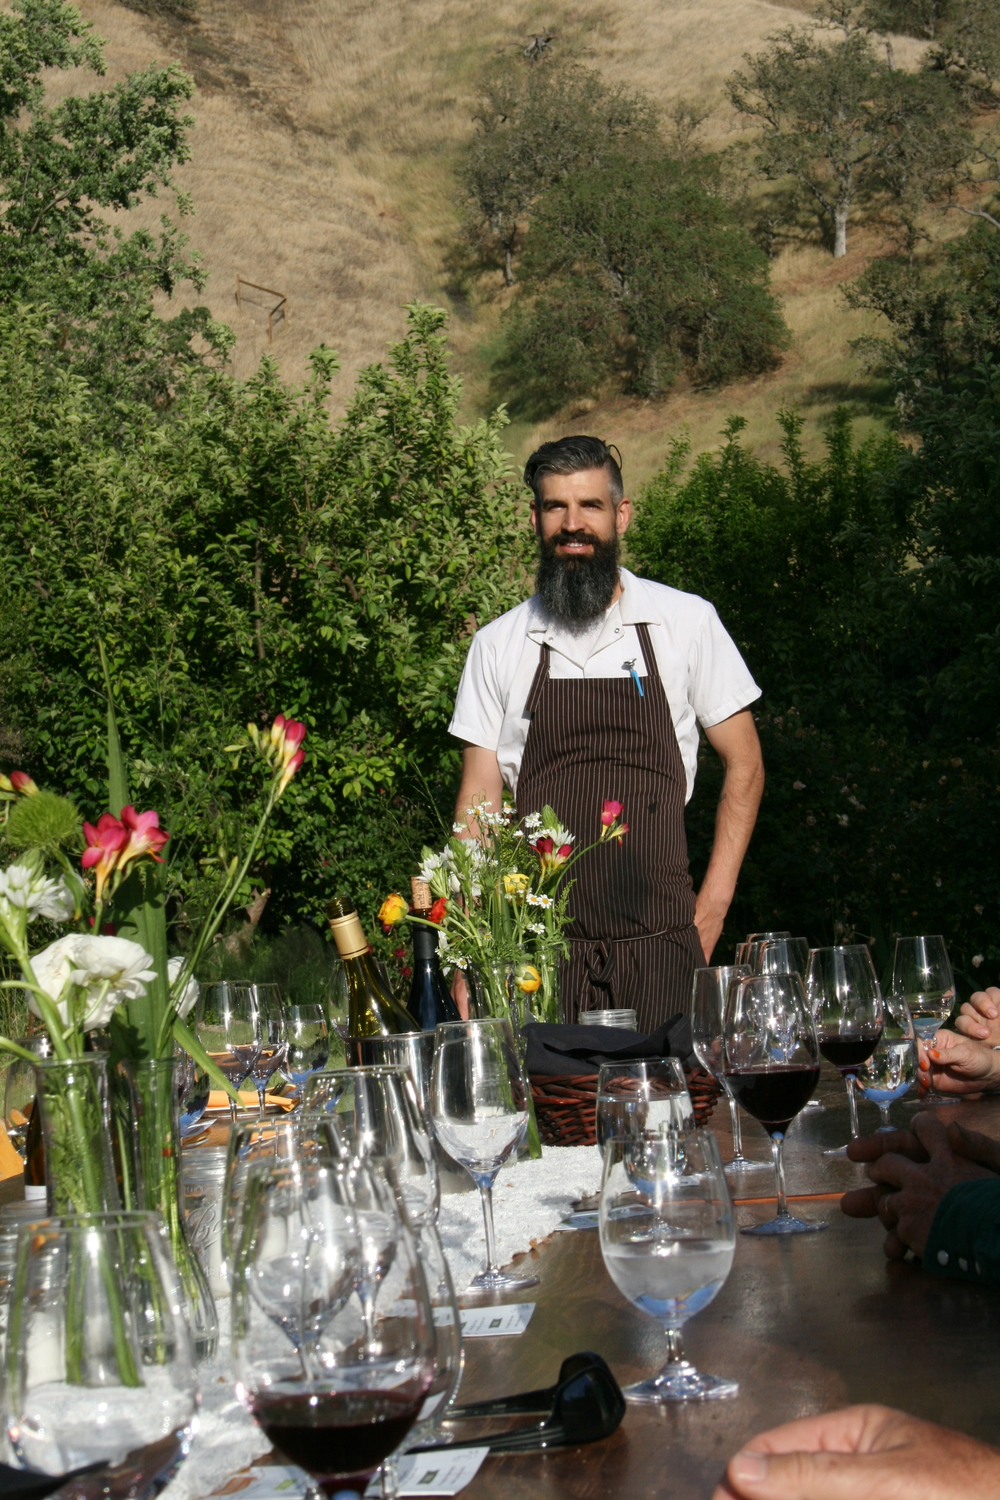 During Thomas Hill Organics' first Table to Farm Dinner held in late April, Executive Chef Tim Veatch worked with the spring bounty provided by Windrose Farm in Paso Robles.   Photos and words by Hayley Thomas